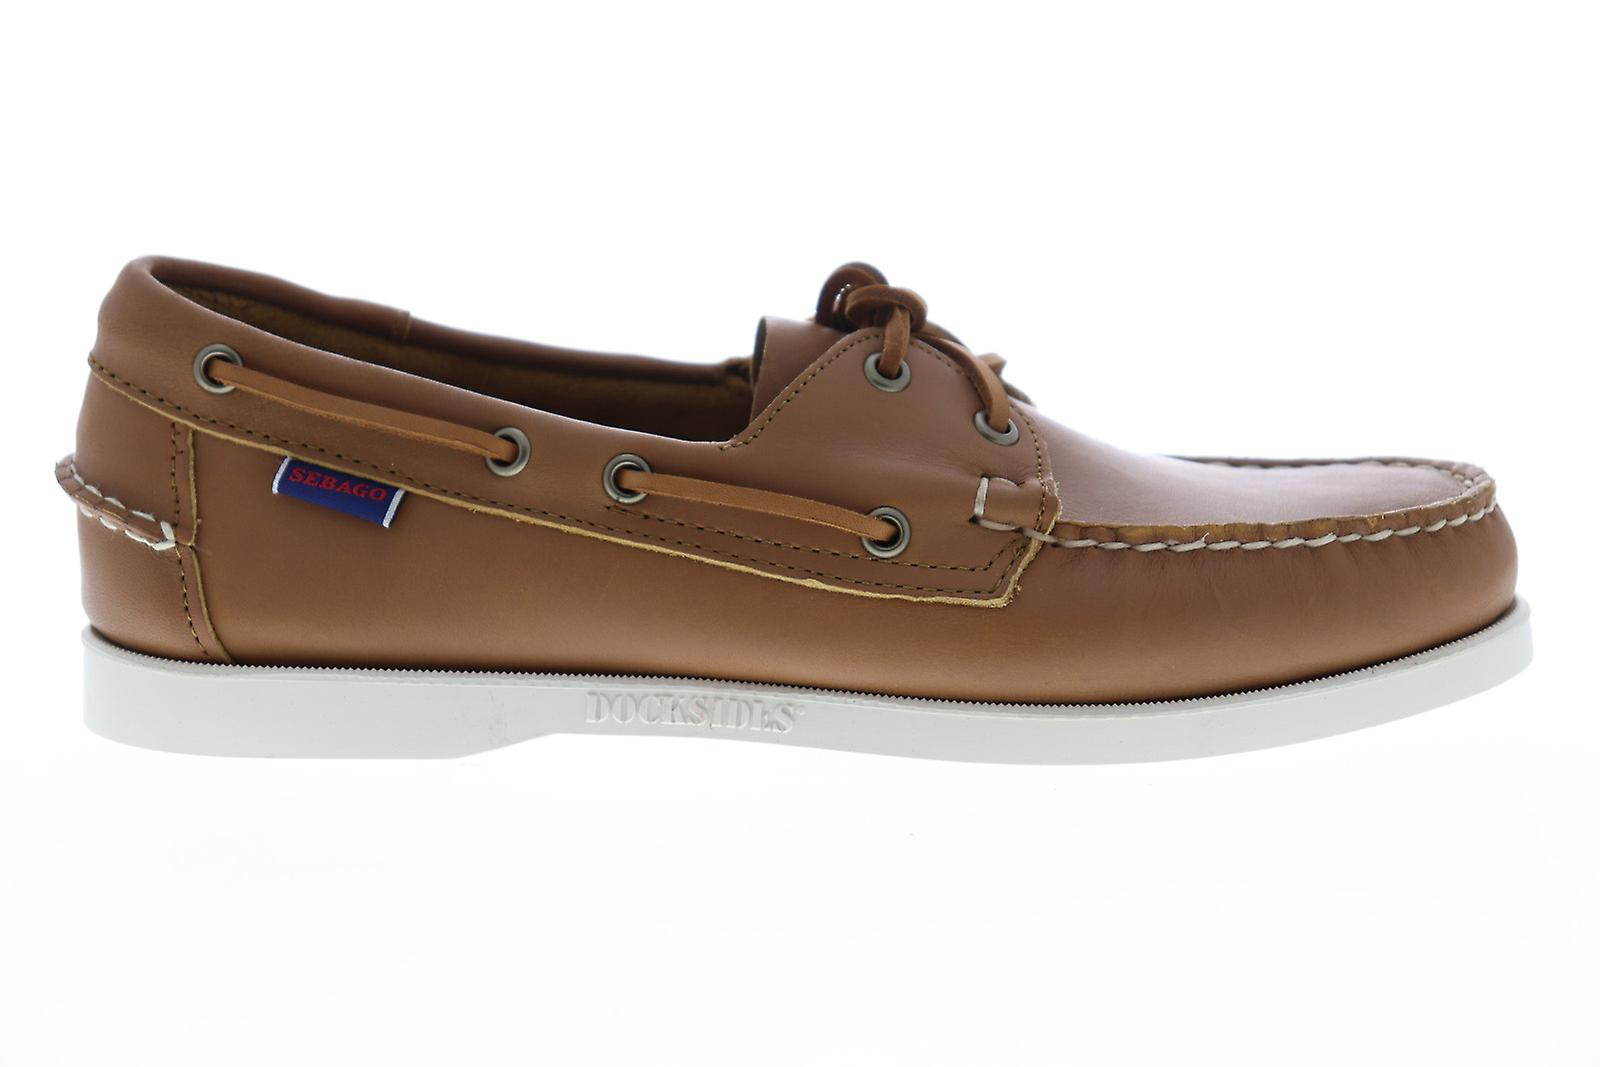 Sebago Portland Docksides Mens Brown Leather Casual Boat Shoes